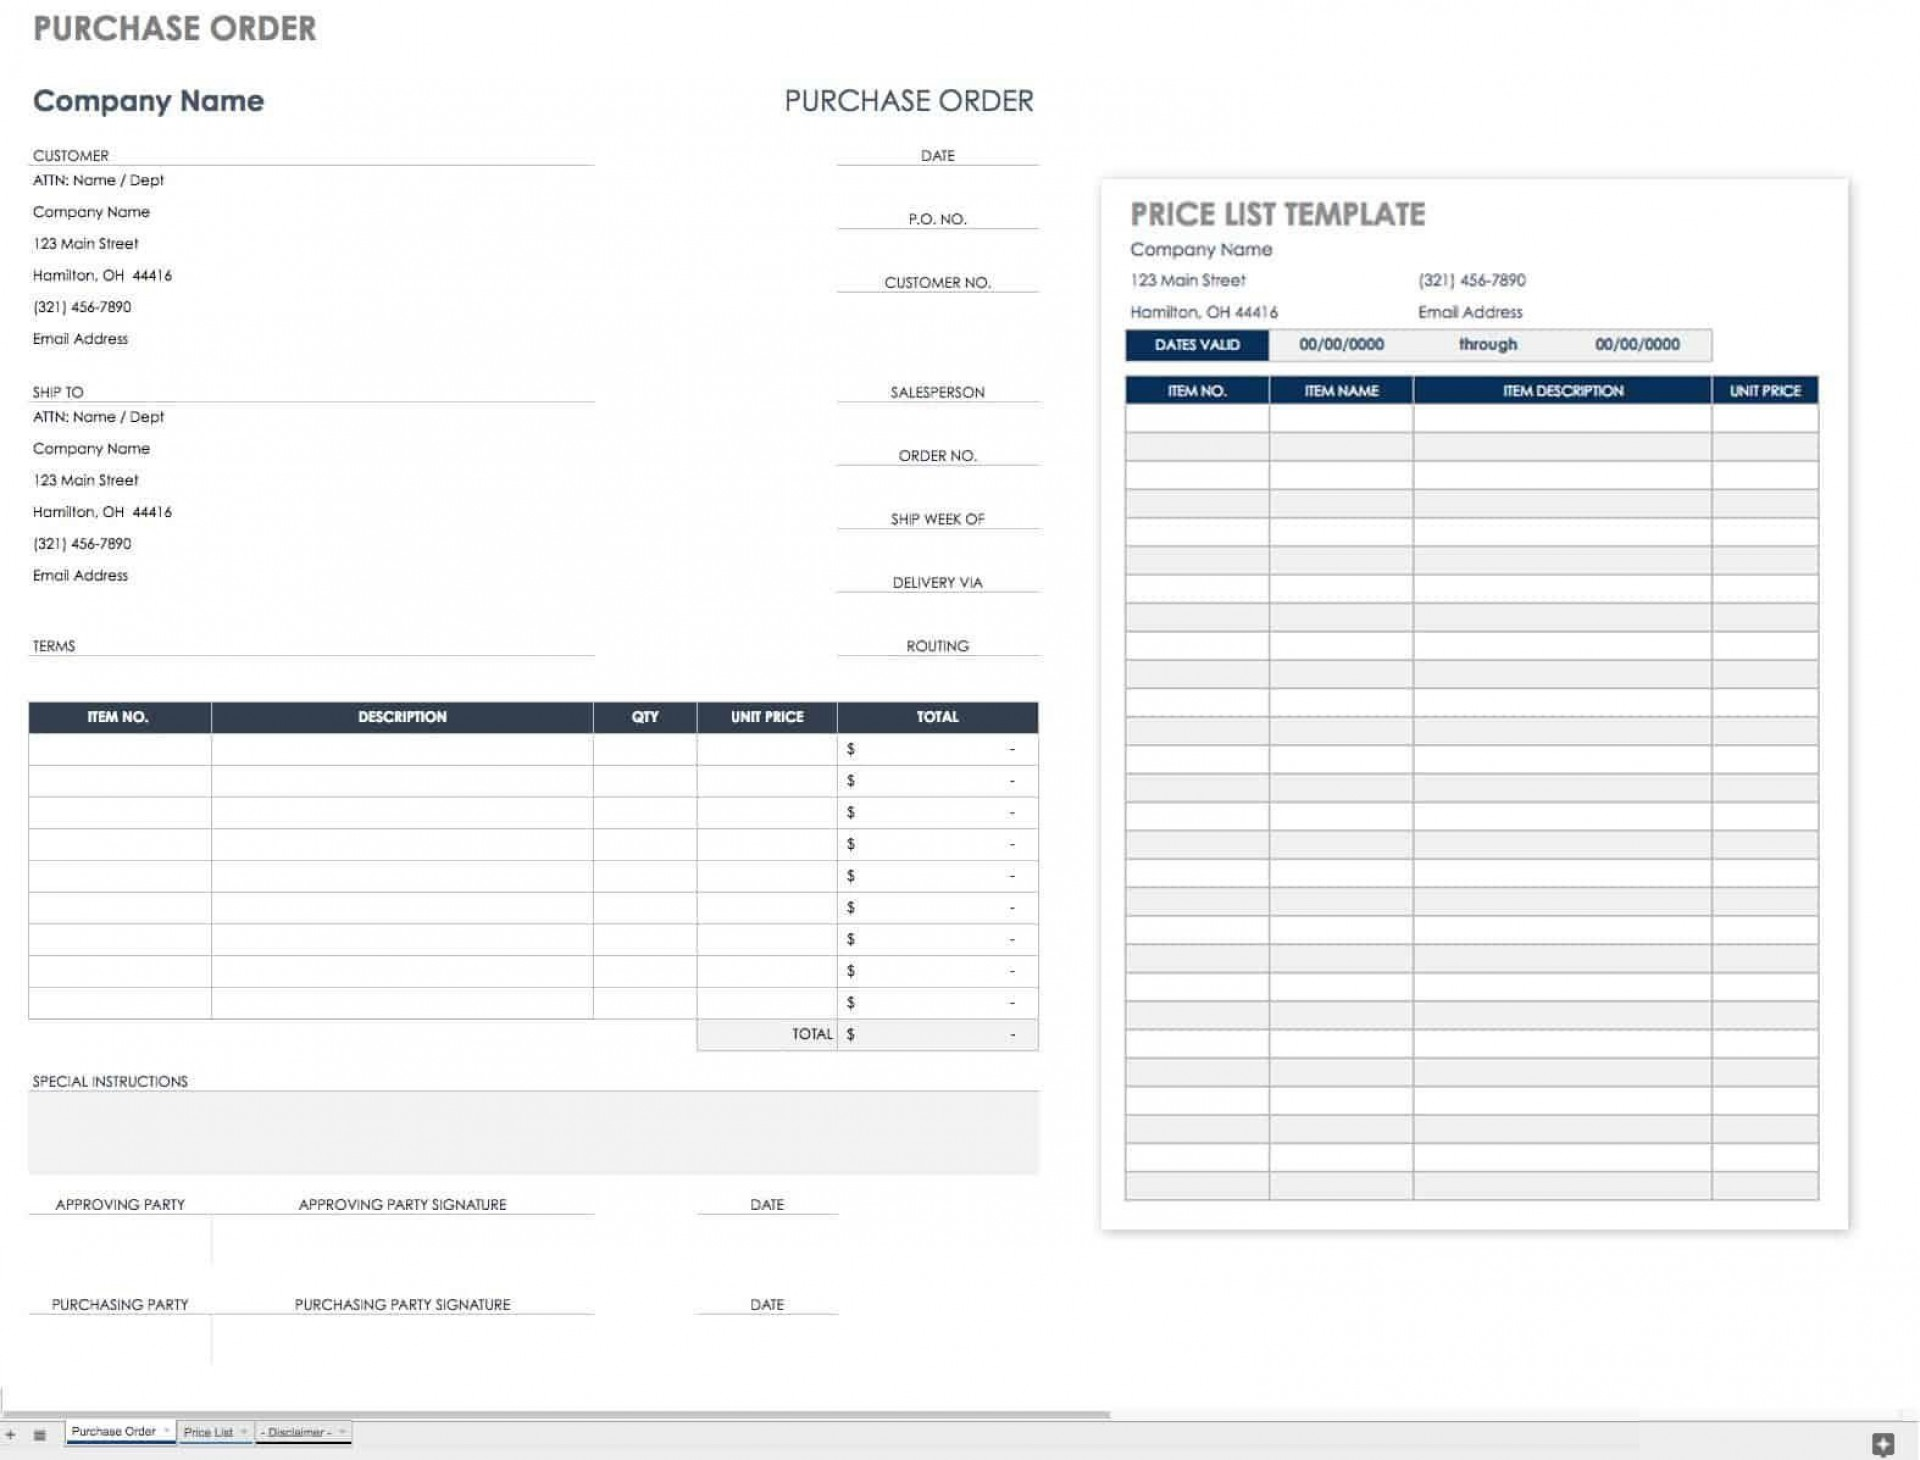 007 Frightening Busines Credit Application Template Excel Inspiration  Form1920